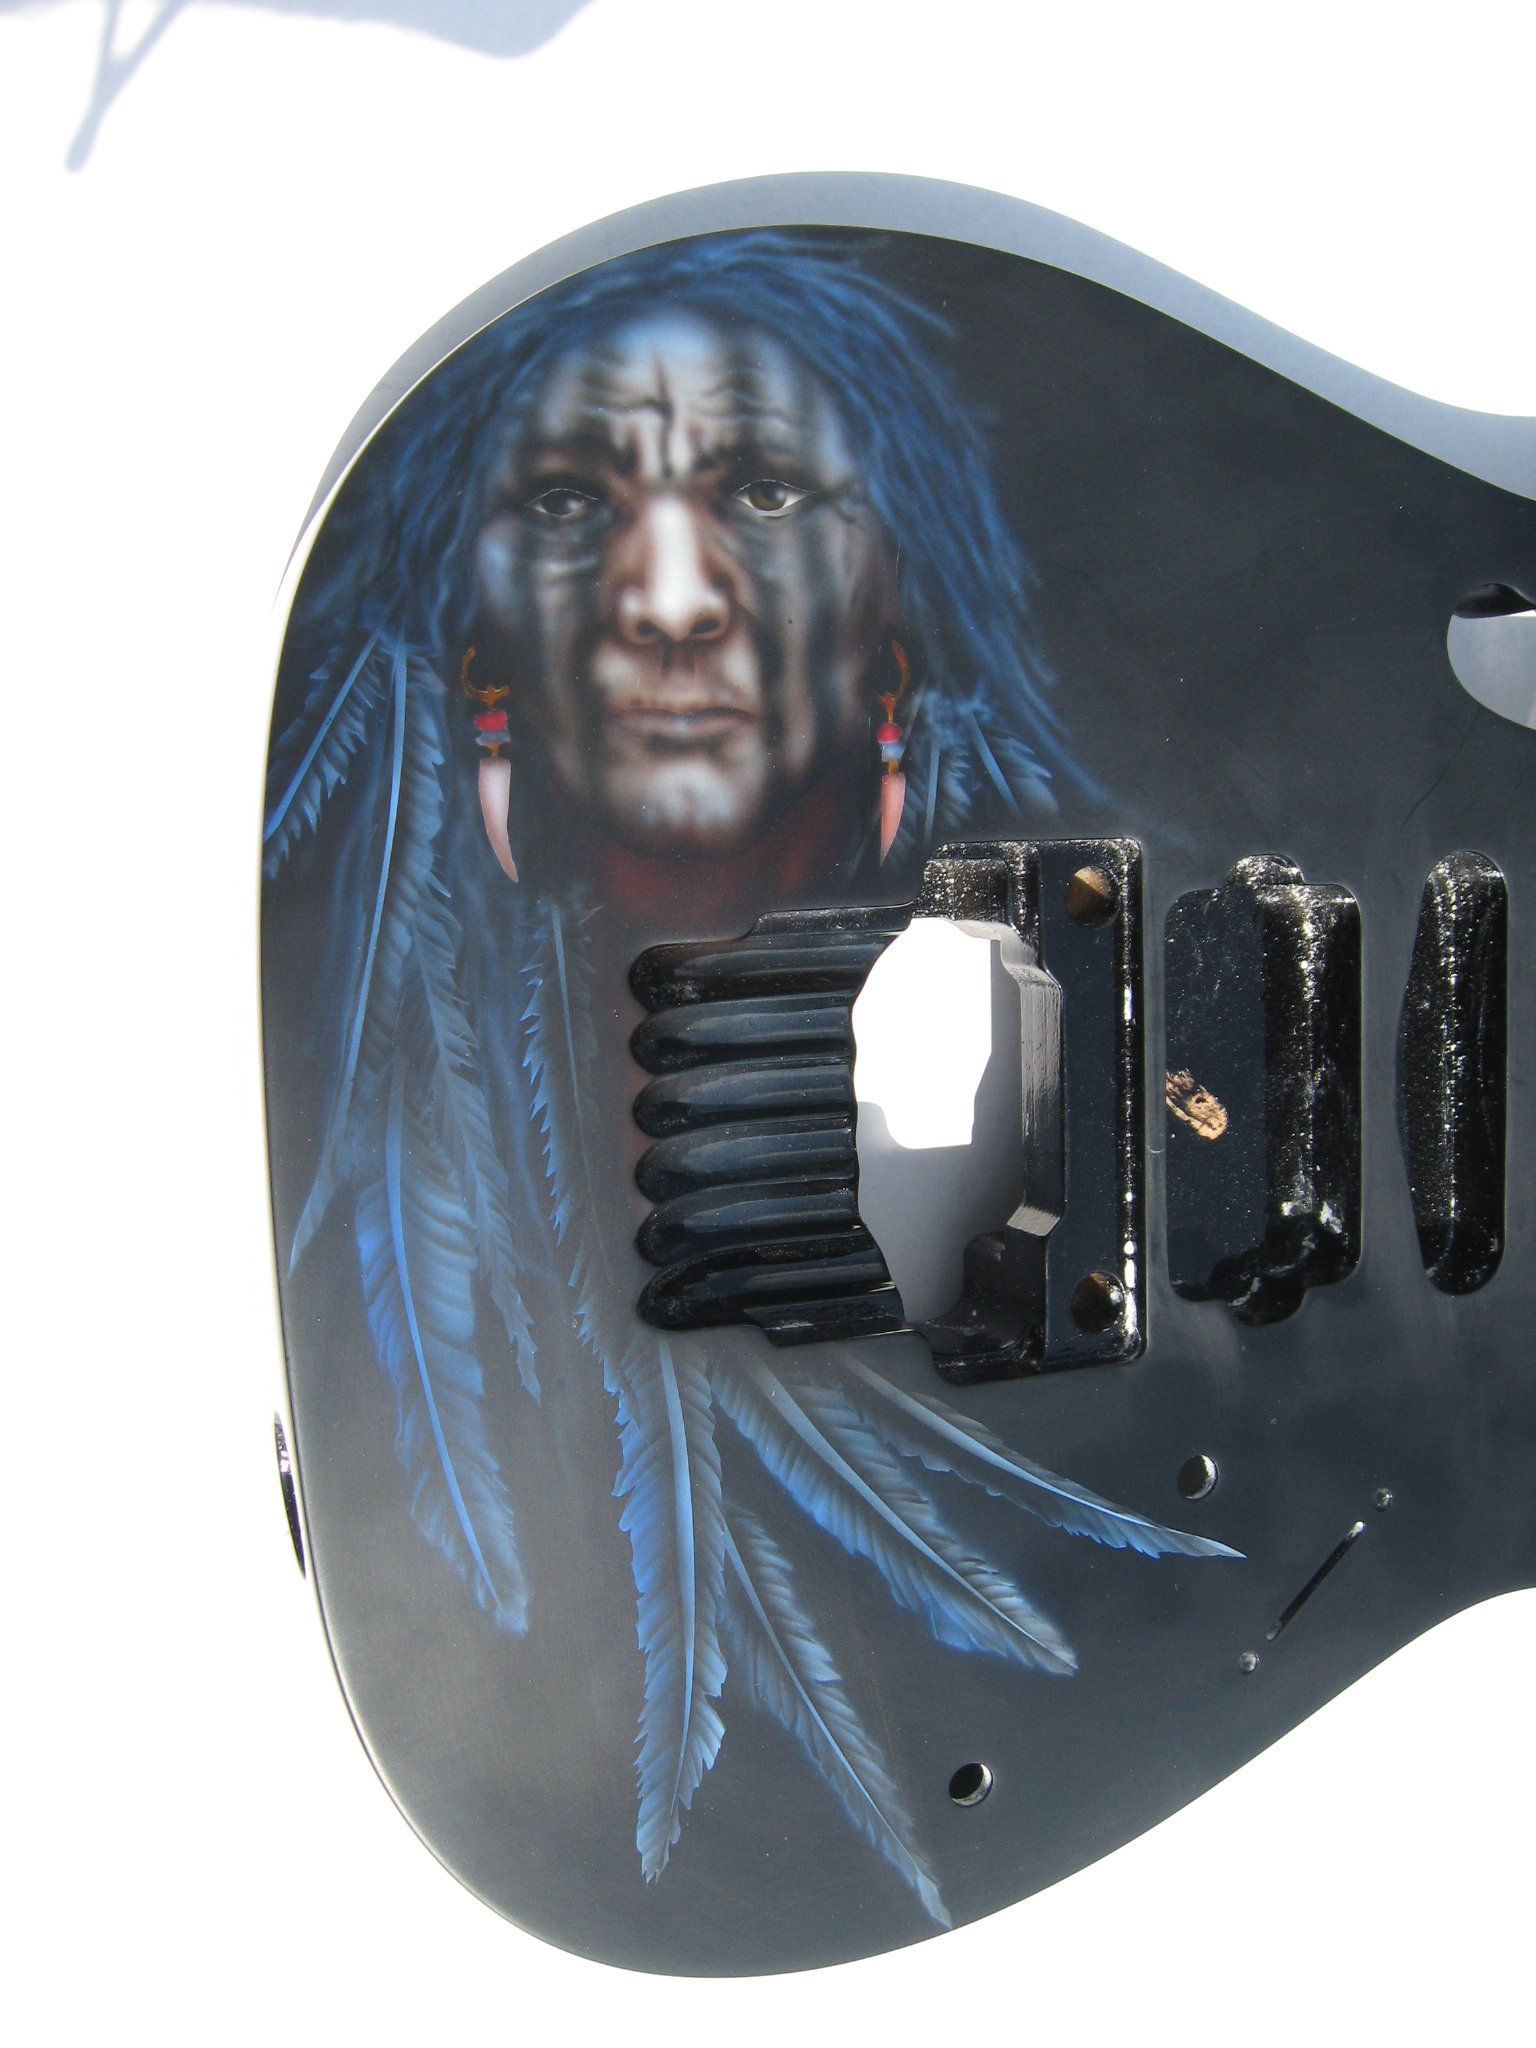 Guitar-Greg-Cassell-Ibanez-Native-American-1 (10)